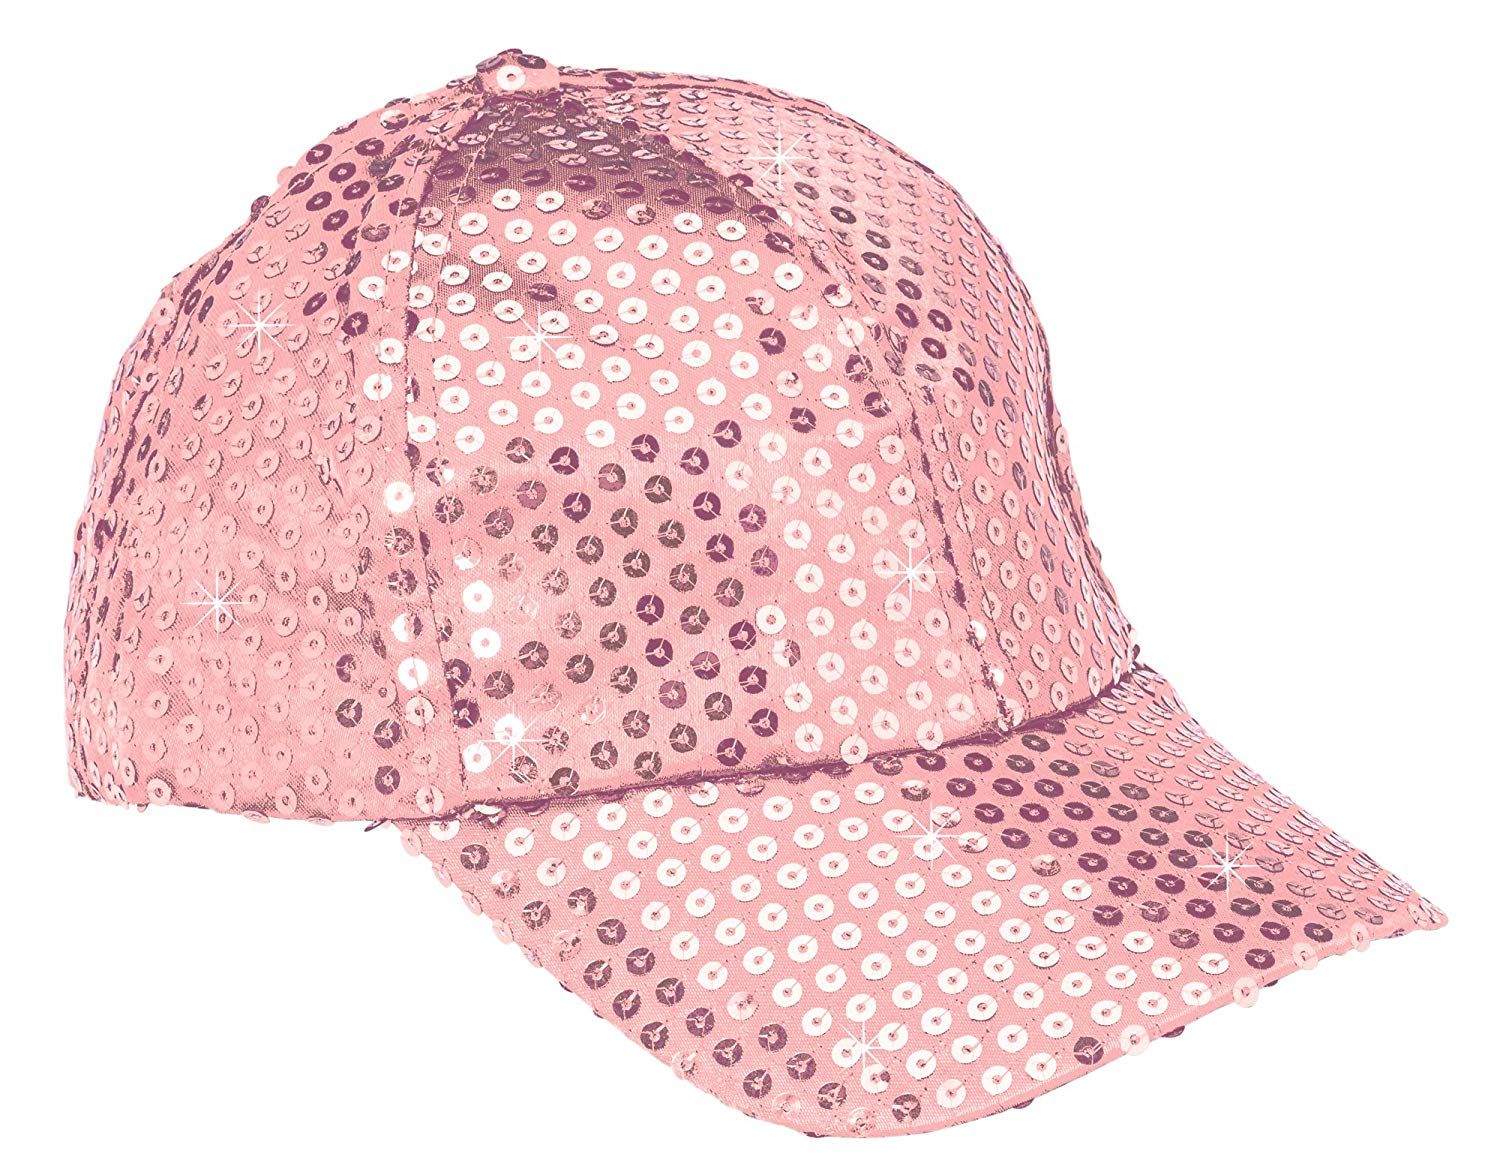 052ee2d7 Get Quotations · The Paragon Baseball Cap for Women - Pink Sequin Hat,  Adjustable Strap Ball Cap